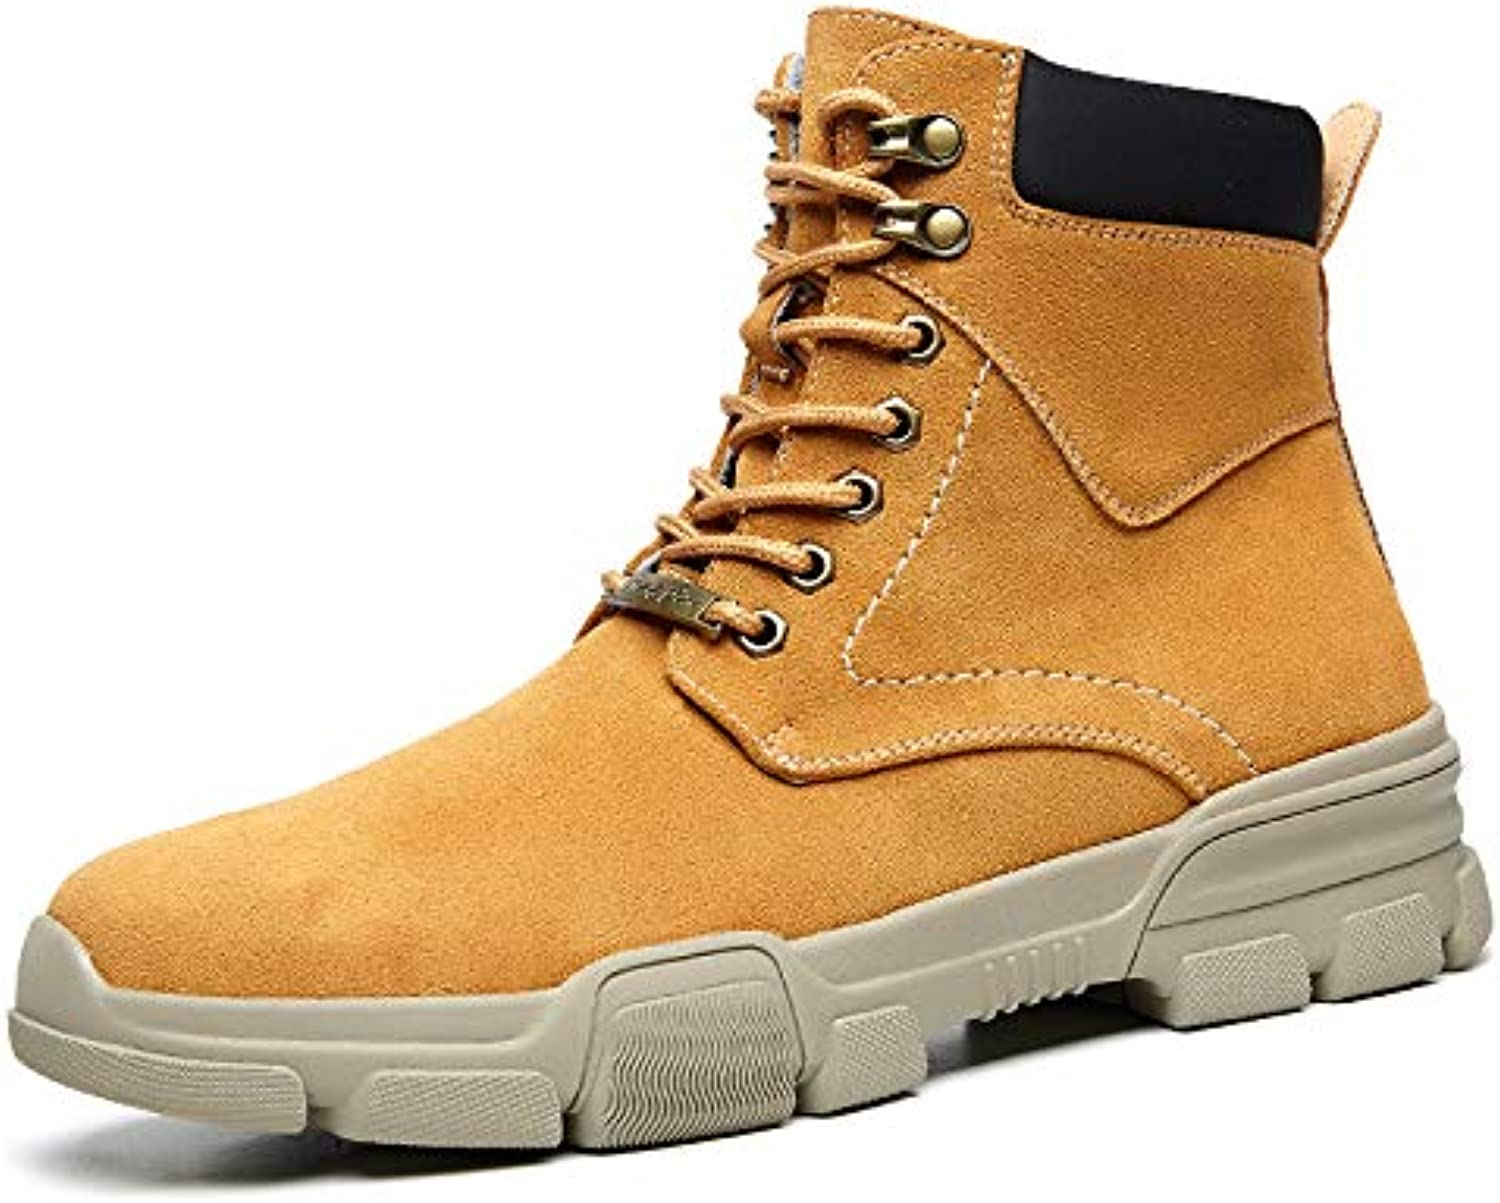 Shukun Men's boots Winter Men'S High-Top shoes In The Cotton shoes Short Boots Cotton Warm Tooling Boots Wild Boots Martin Boots Men